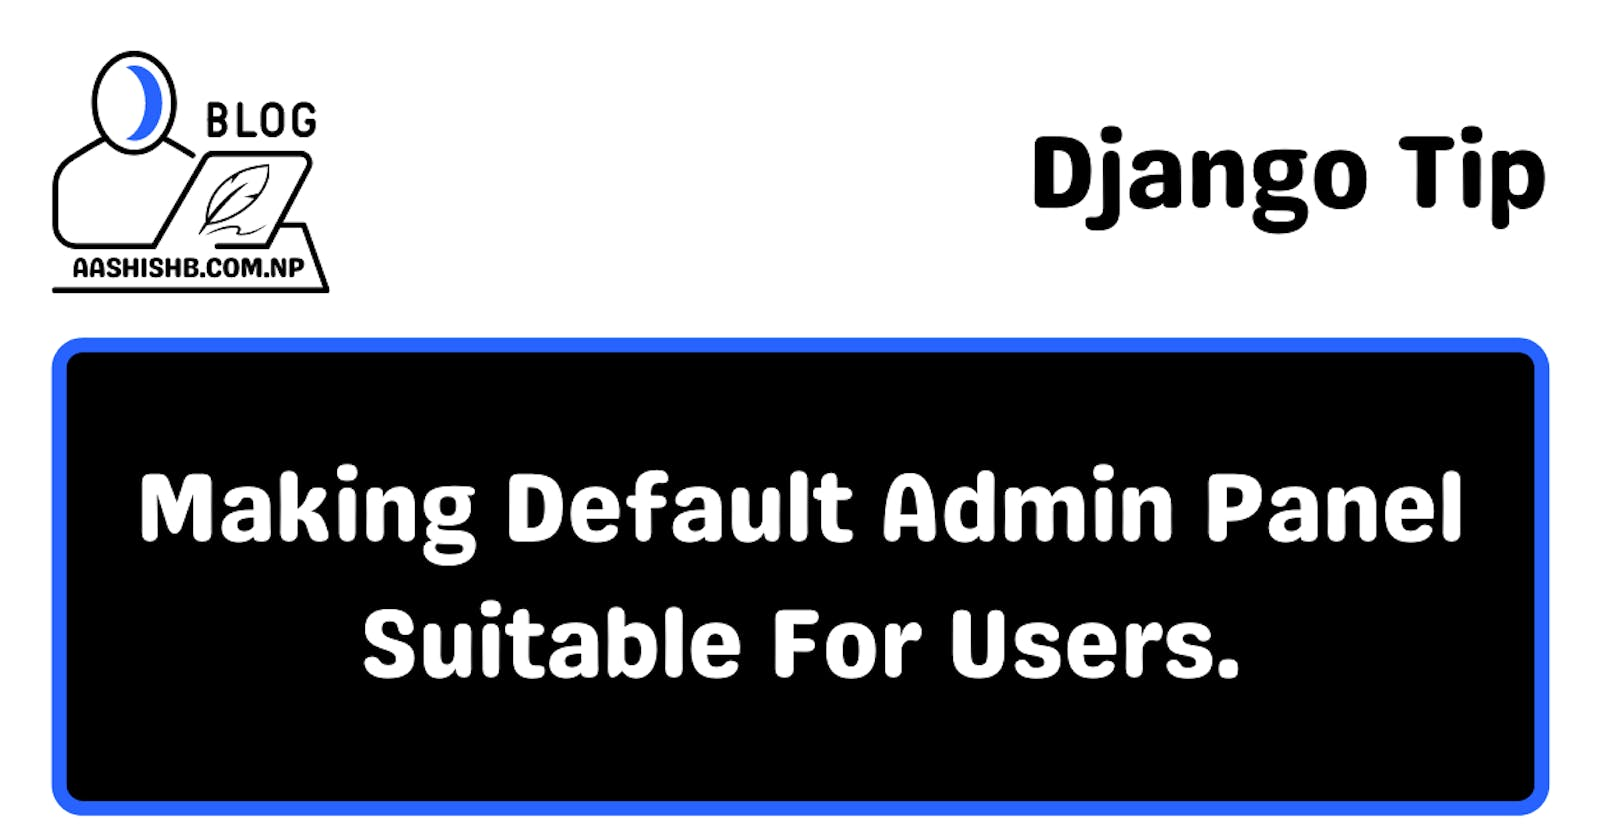 Django Tip | How To Make Default Admin Panel Suitable For Users?